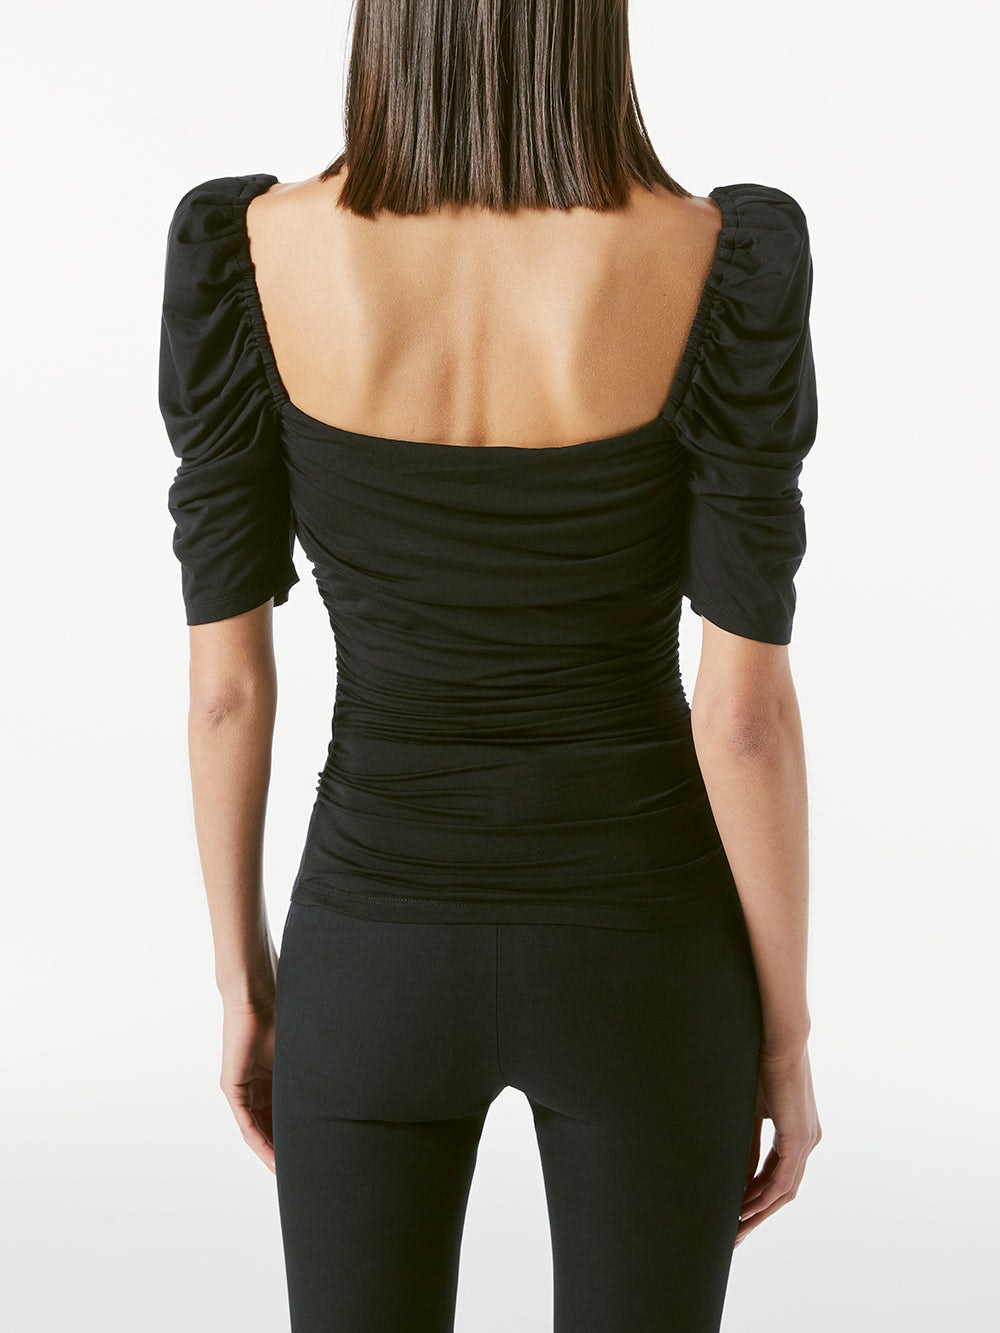 top back view 2